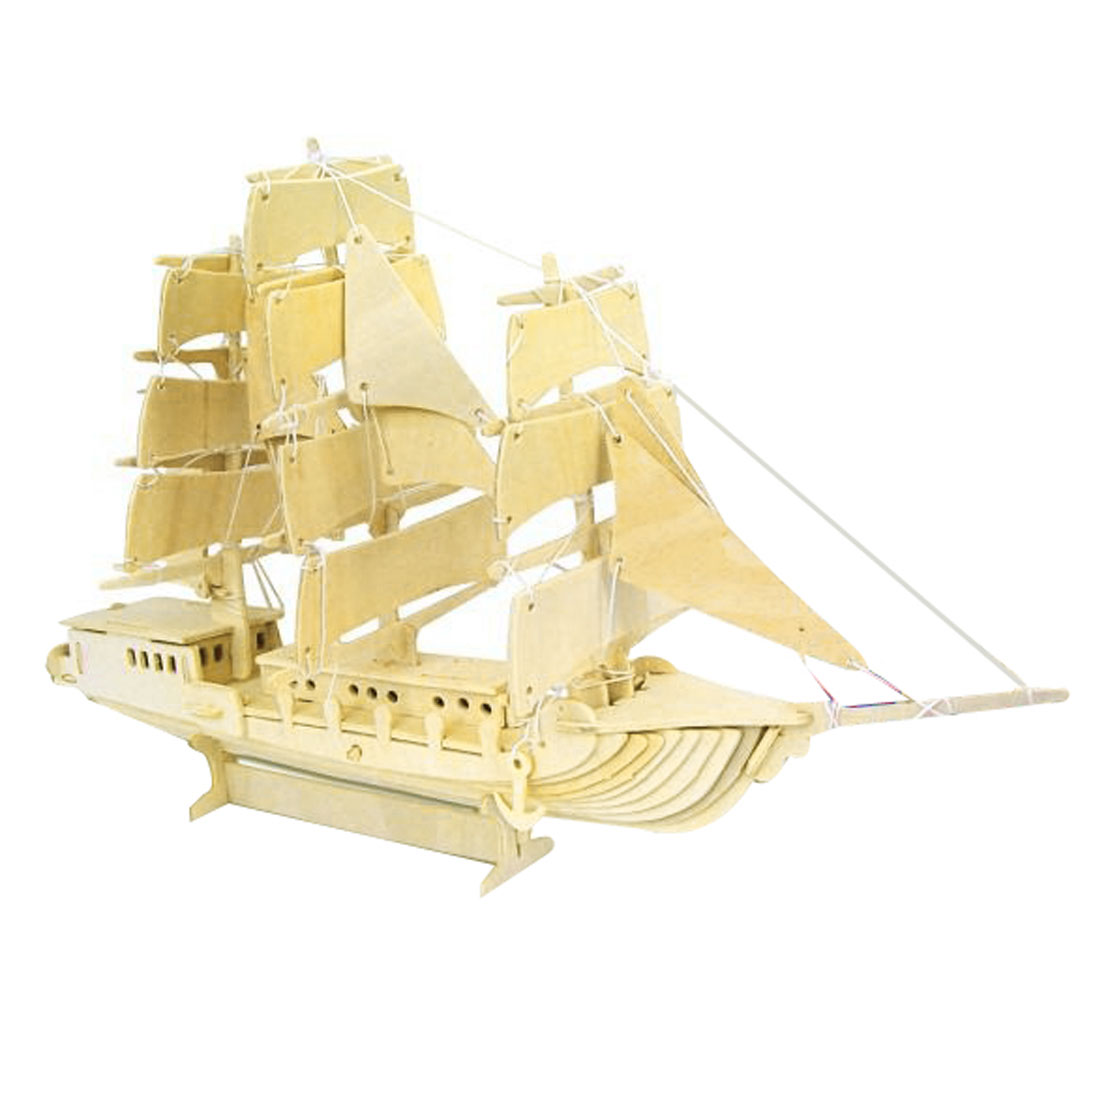 Child Sailing Boat Model Wooden Construction Kit Puzzle Toy Gift